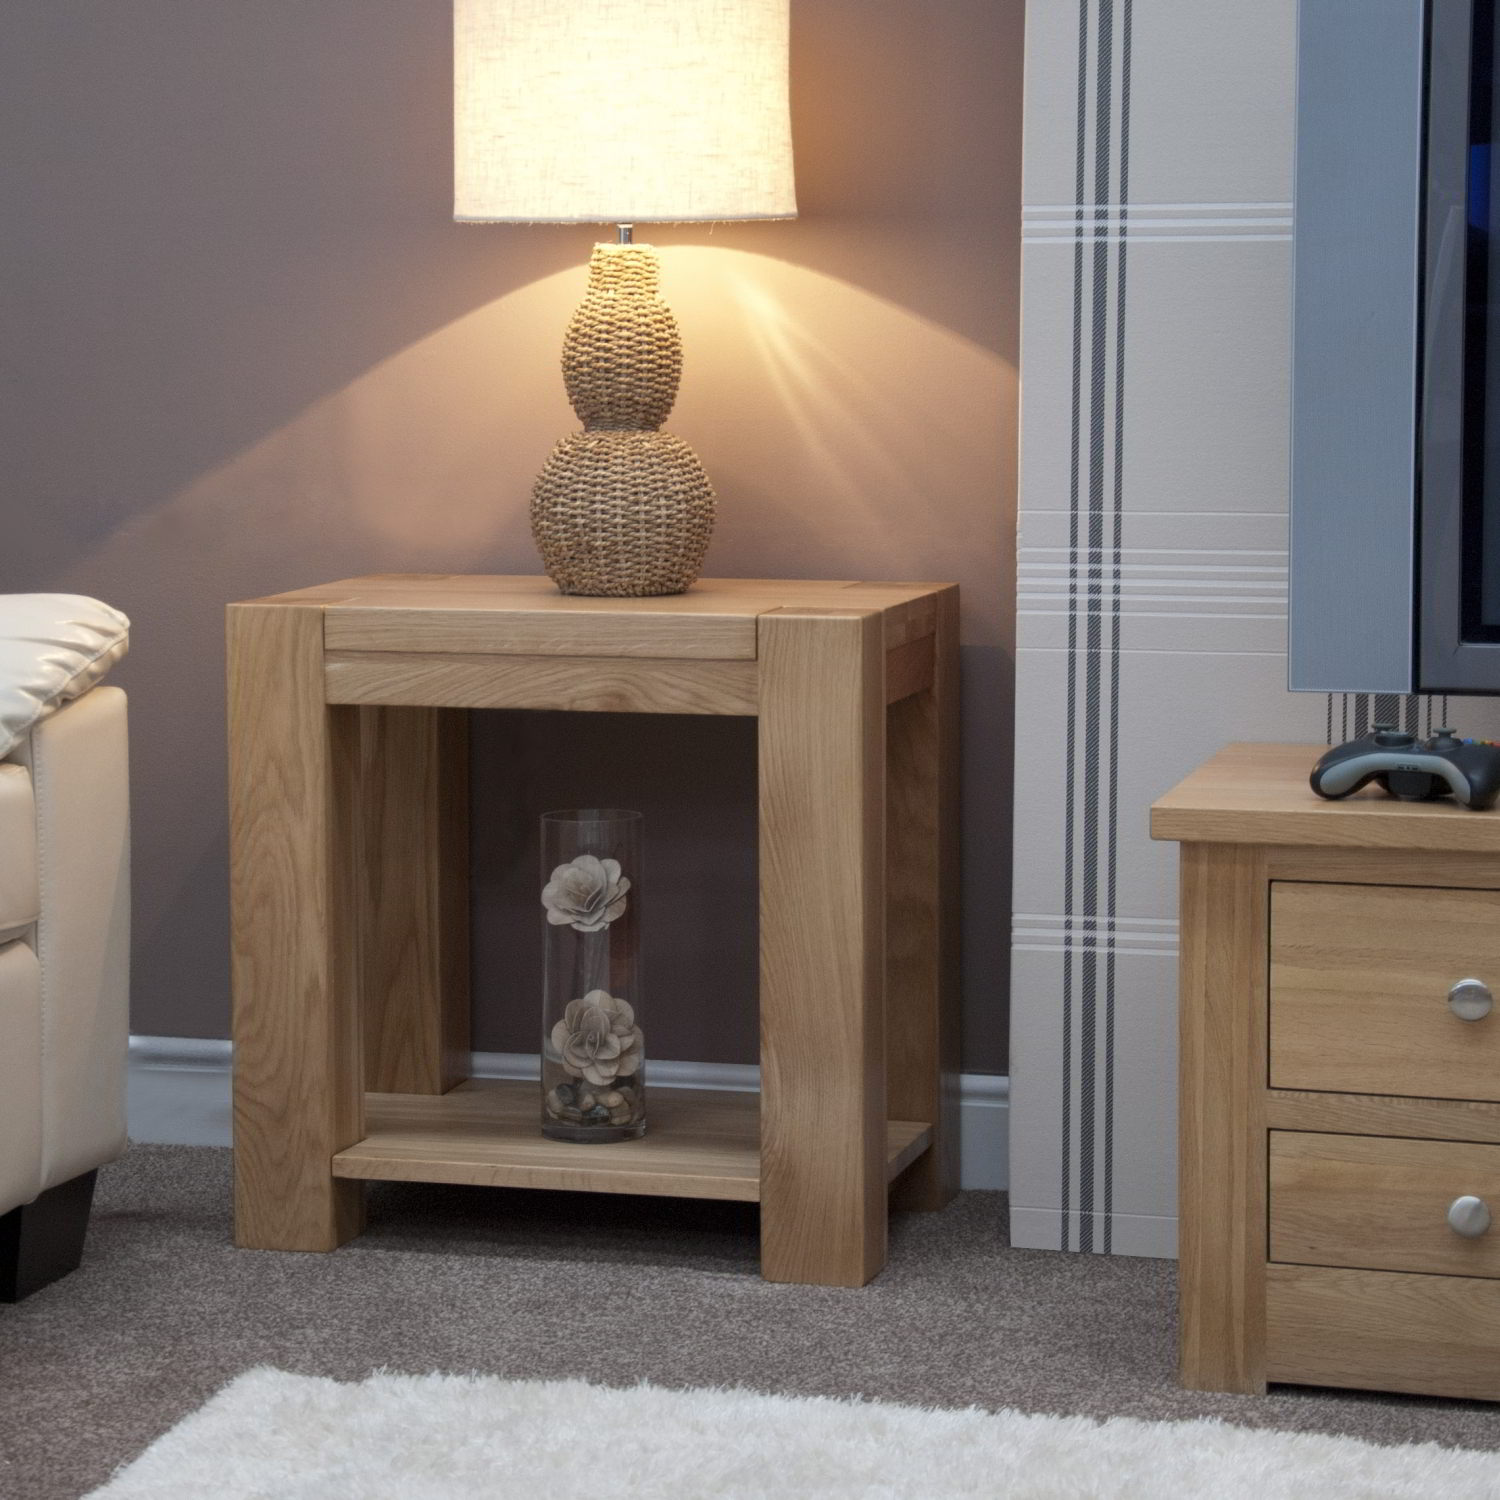 Pemberton Solid Chunky Oak Living Room Furniture Lamp Sofa